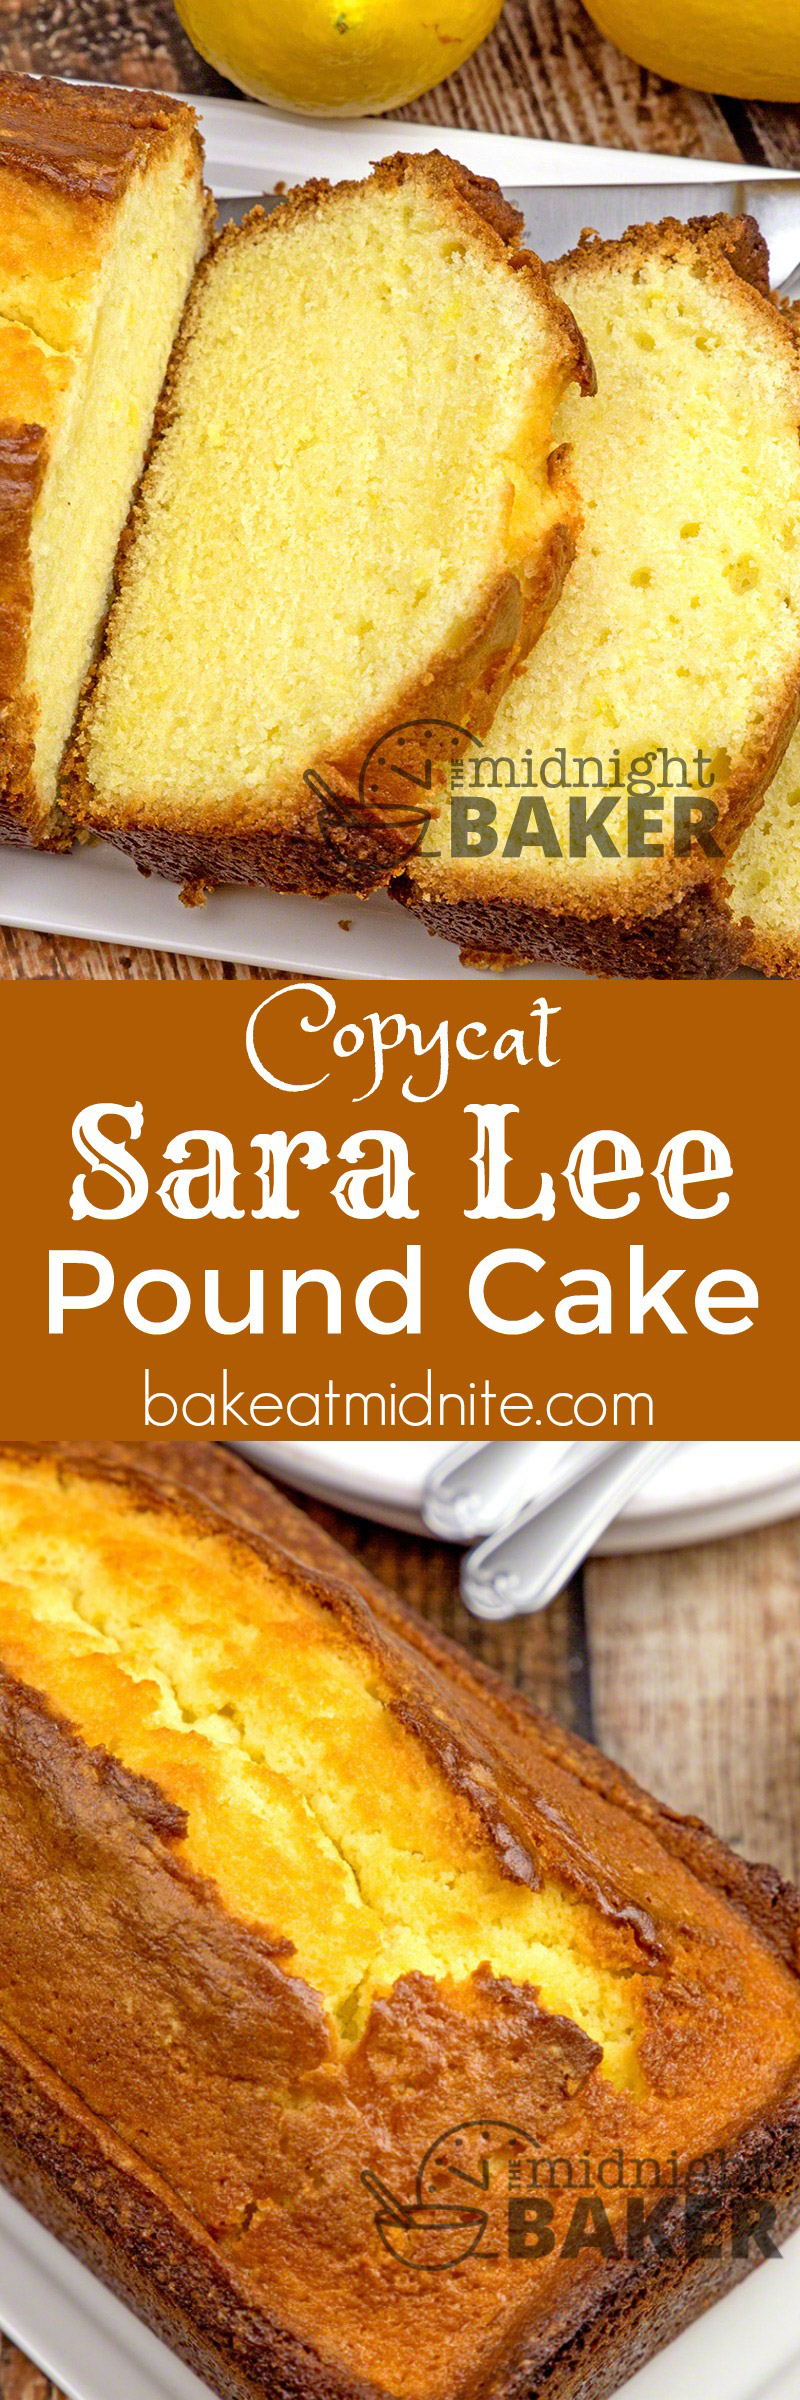 Copycat Sara Lee Pound Cake The Midnight Baker